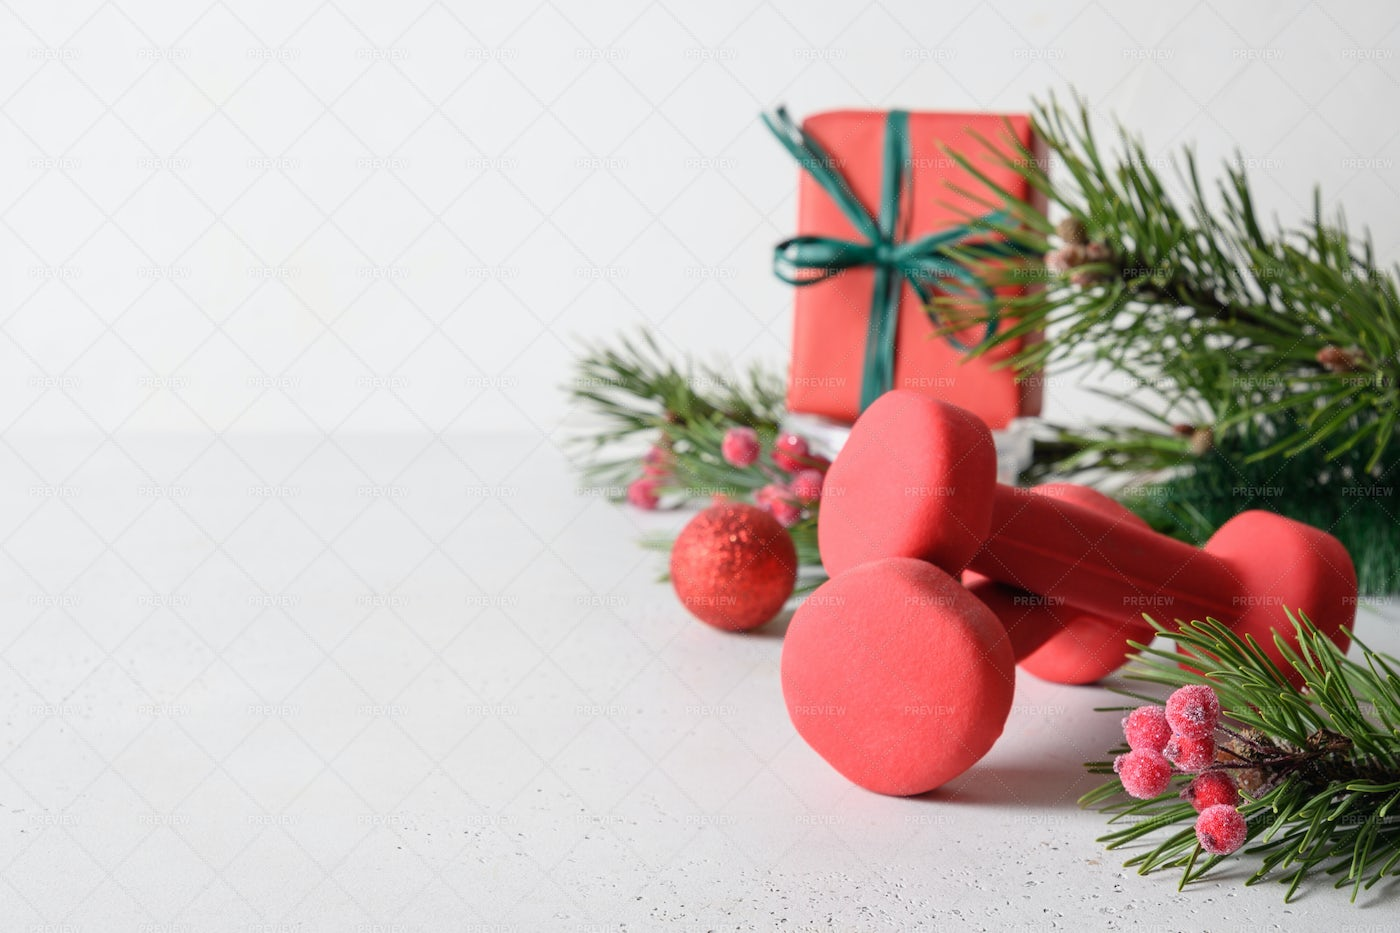 Christmas Holiday With Dumbbells: Stock Photos